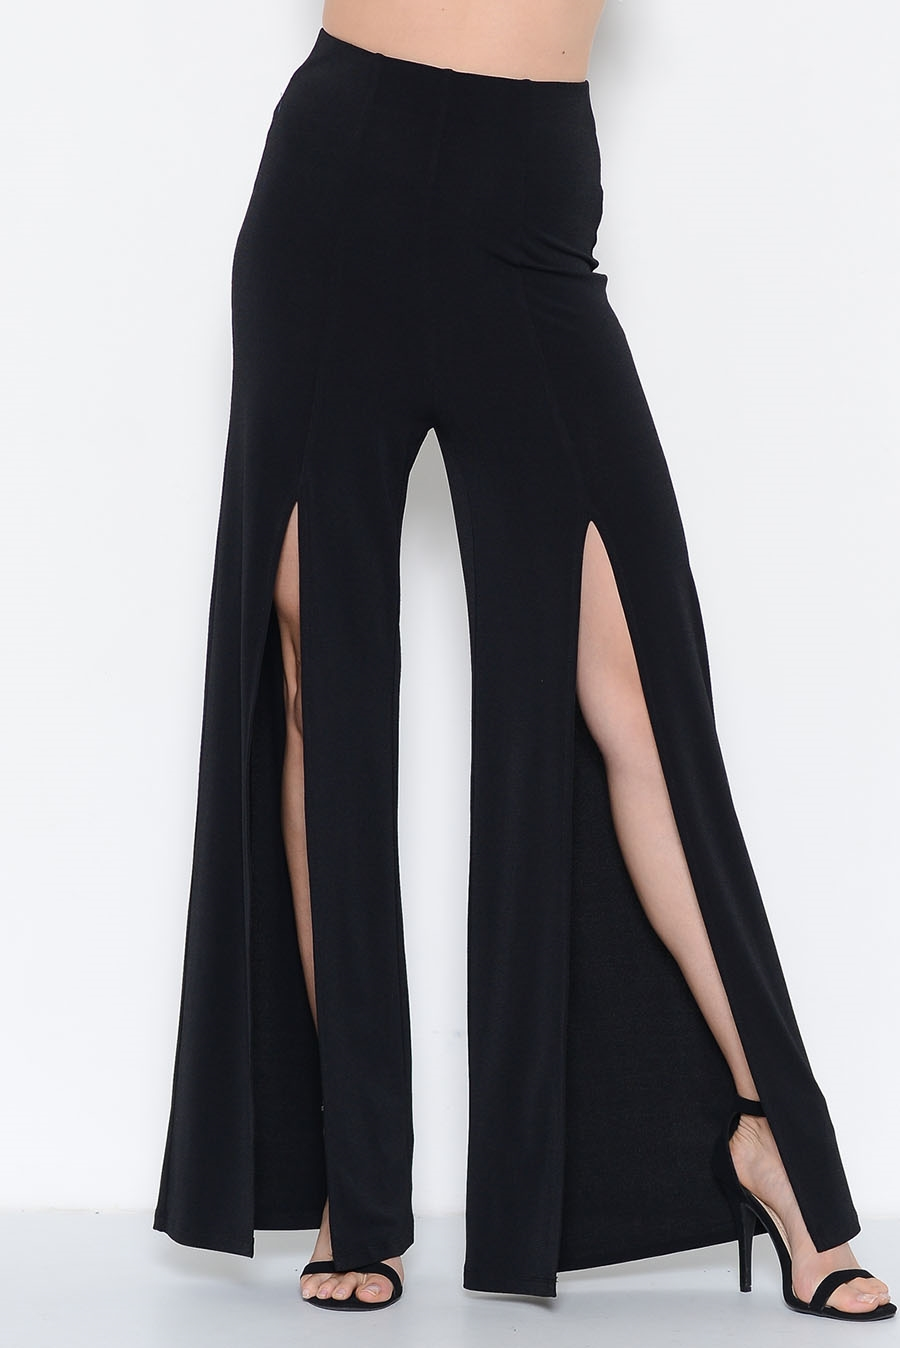 HIGH WAIST SLIT SIDE PANTS - orangeshine.com